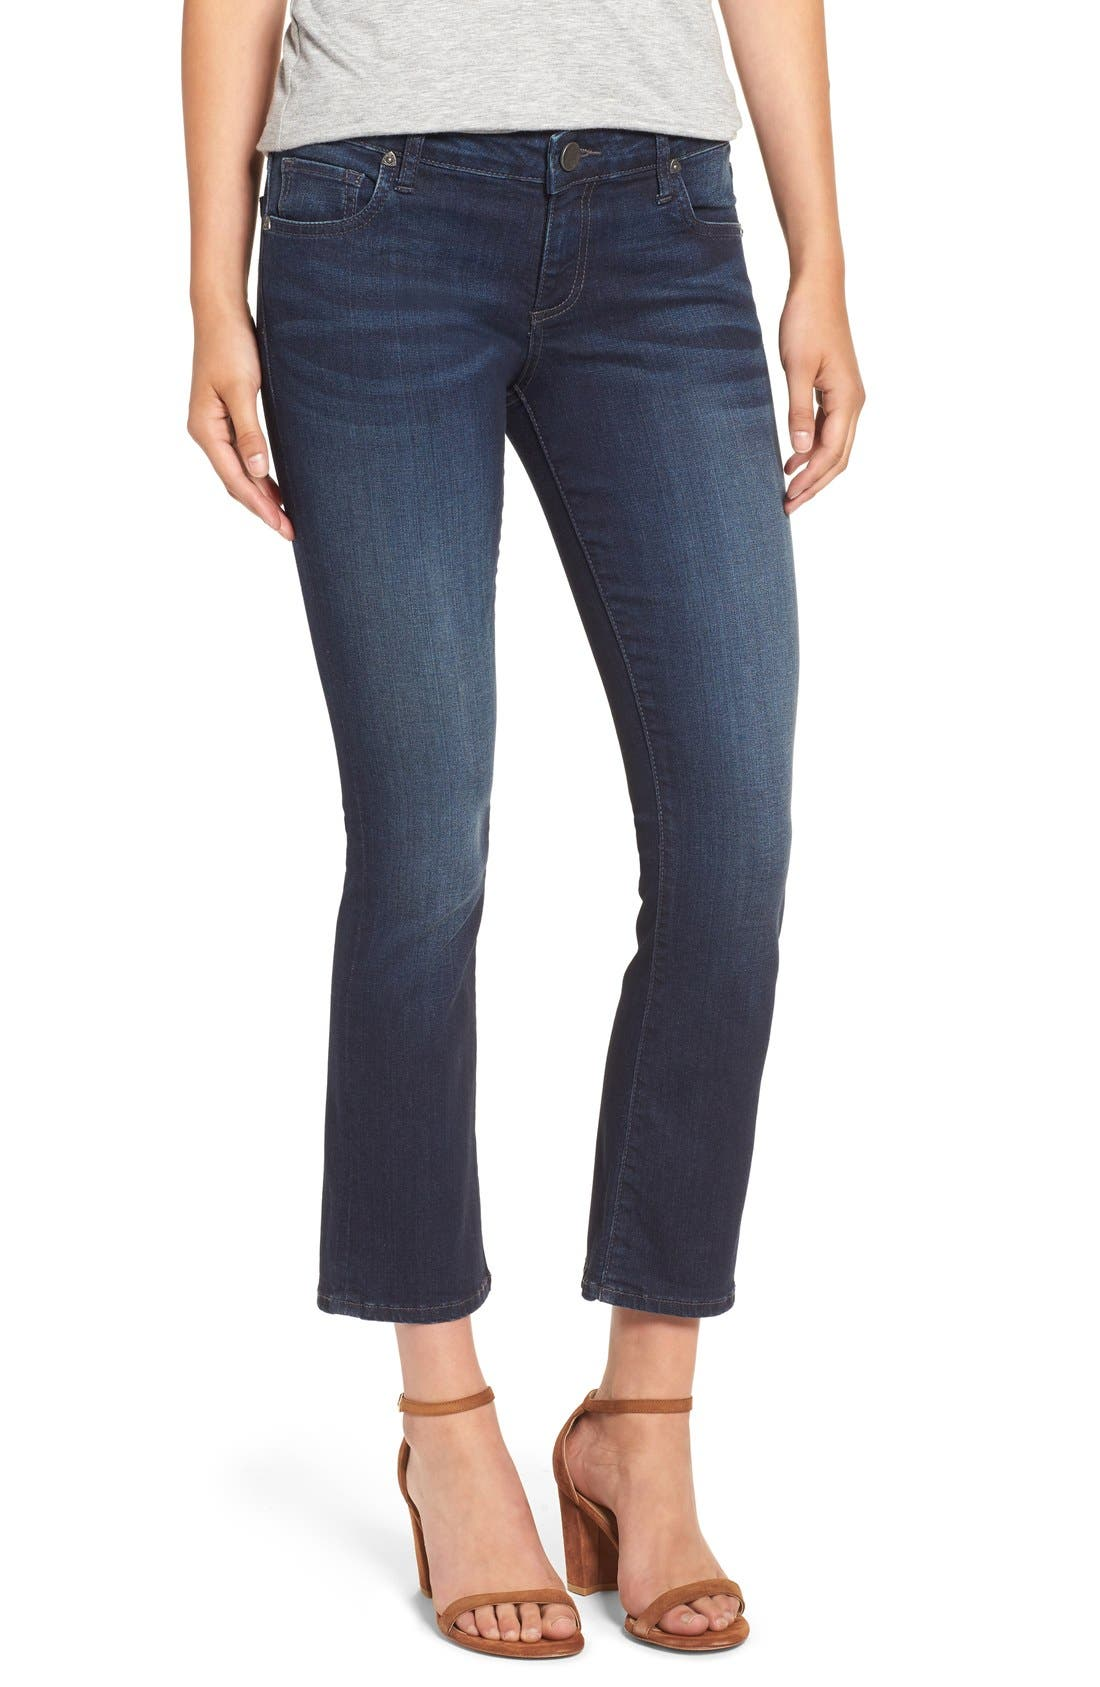 Alternate Image 1 Selected - KUT from the Kloth 'Reese' Crop Flare Leg Jeans (Security)